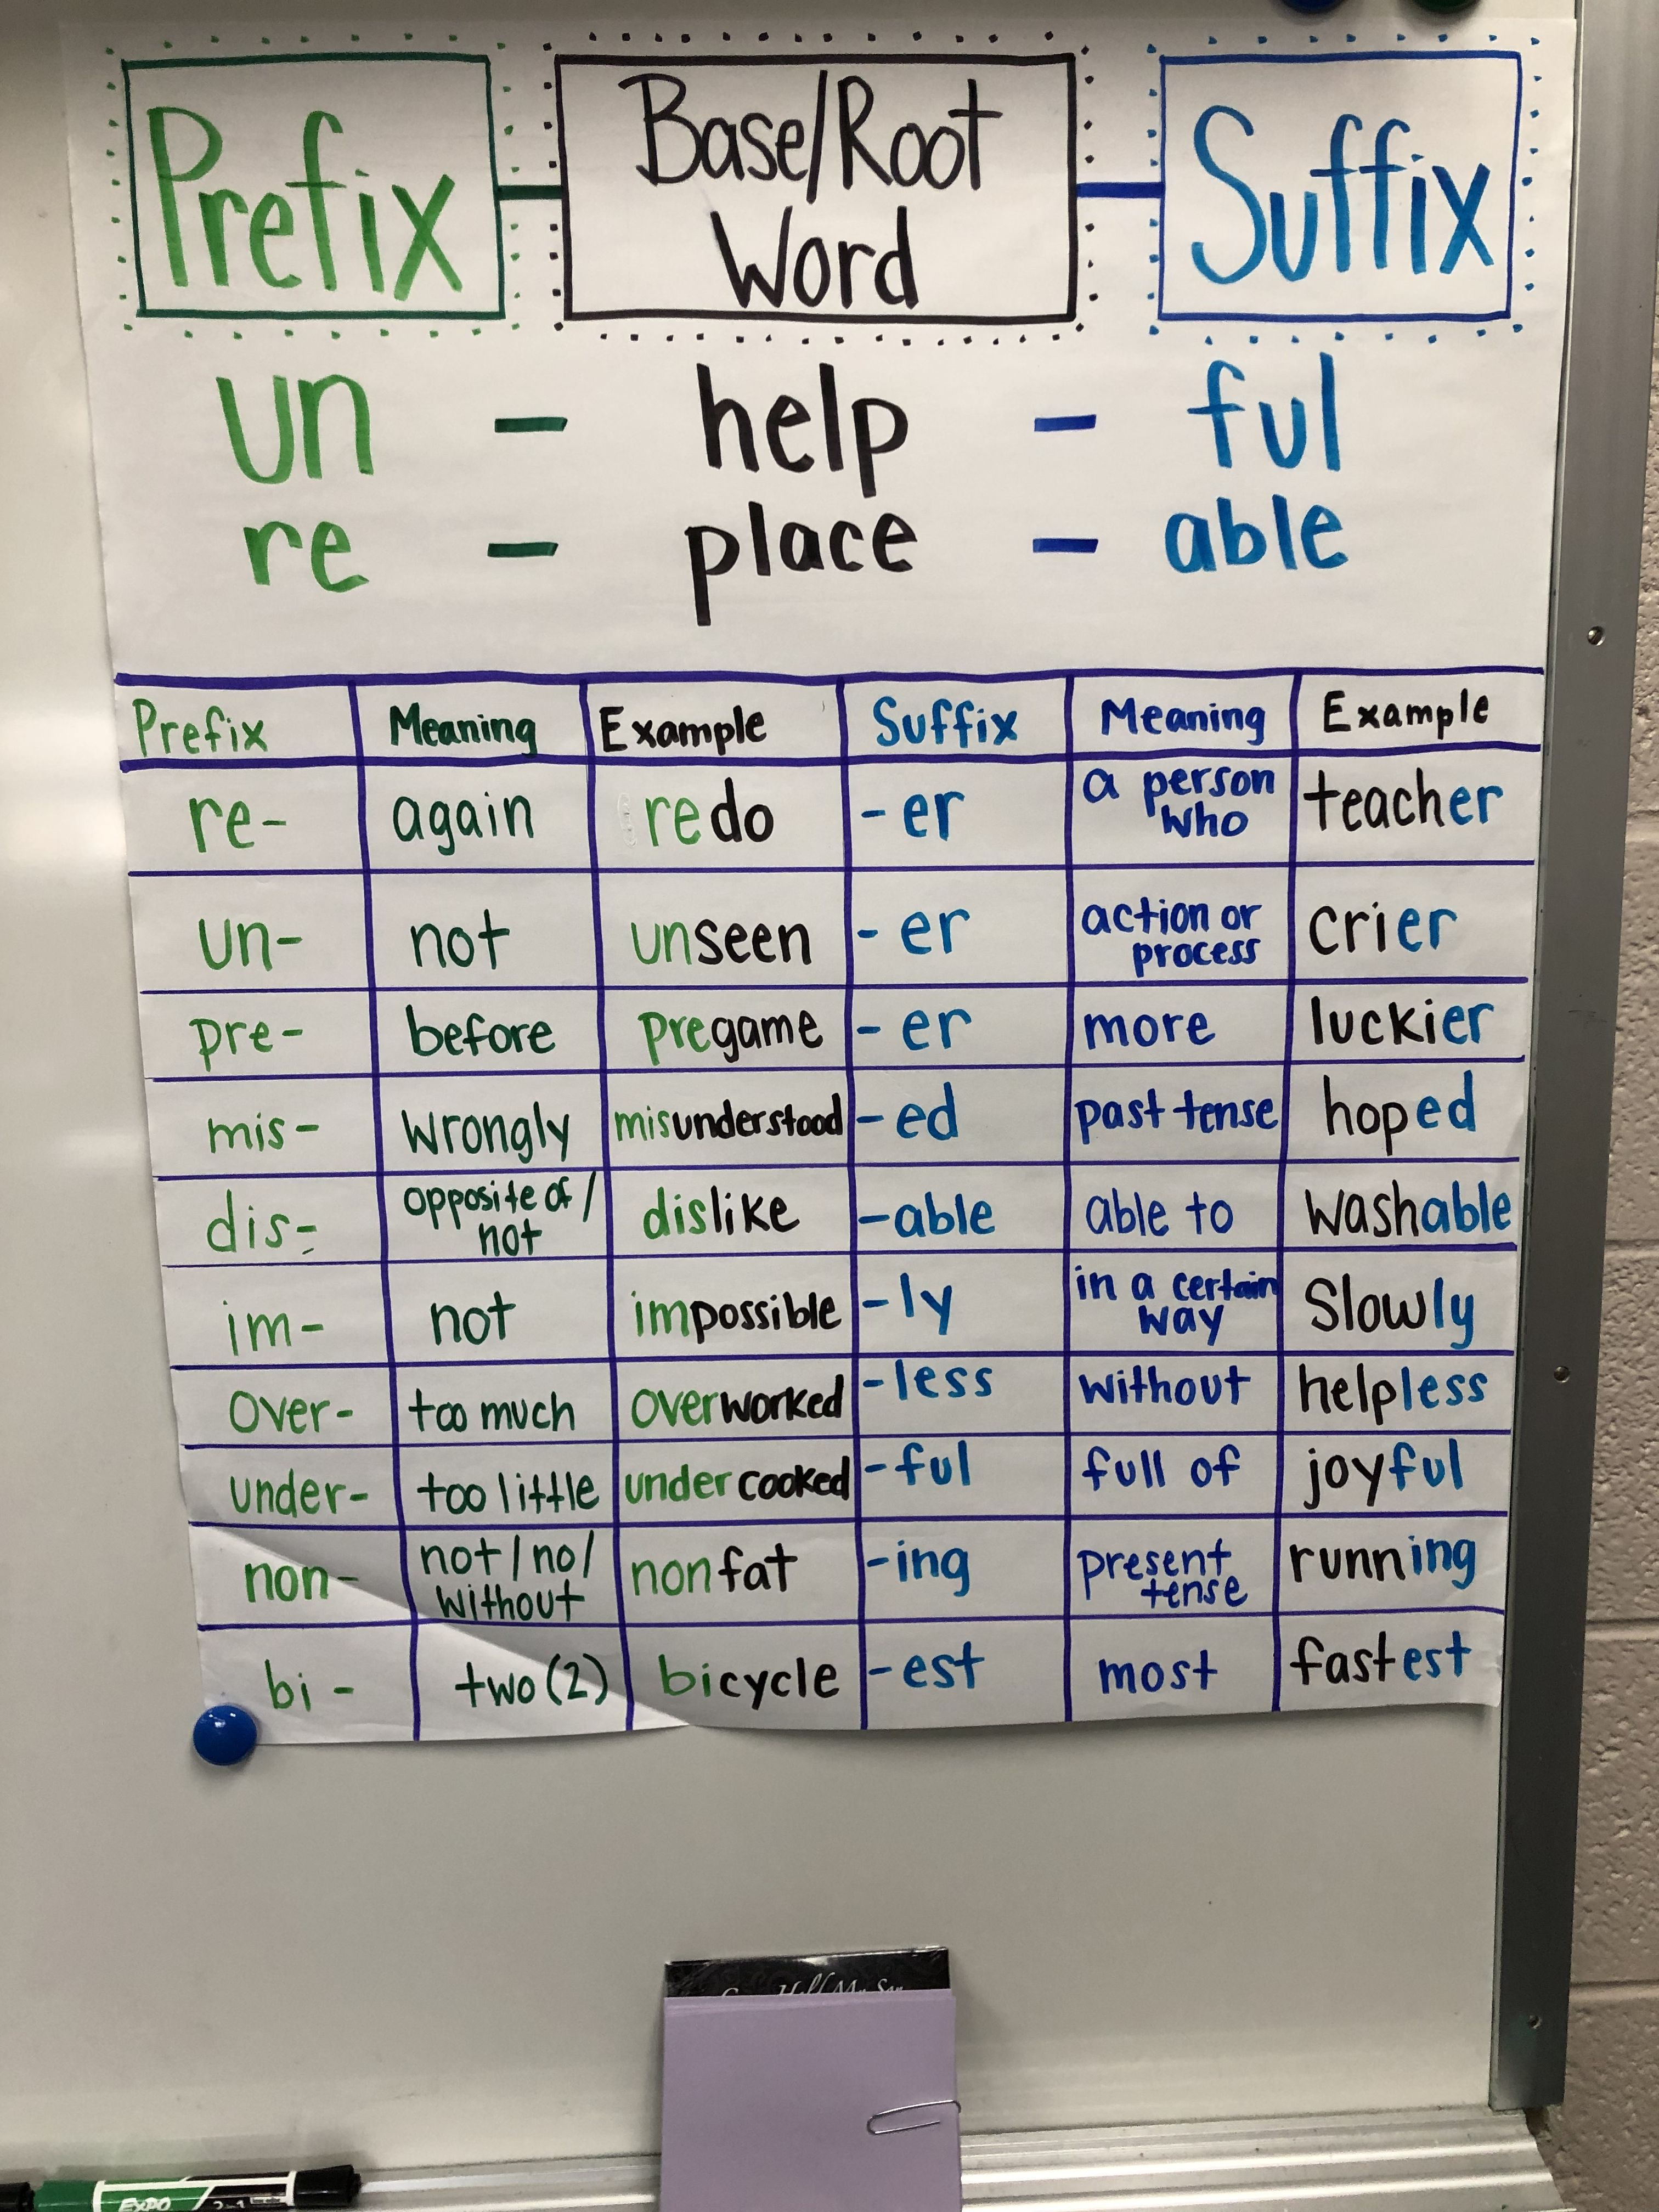 medium resolution of Prefixes and Suffixes anchor chart   Suffixes anchor chart